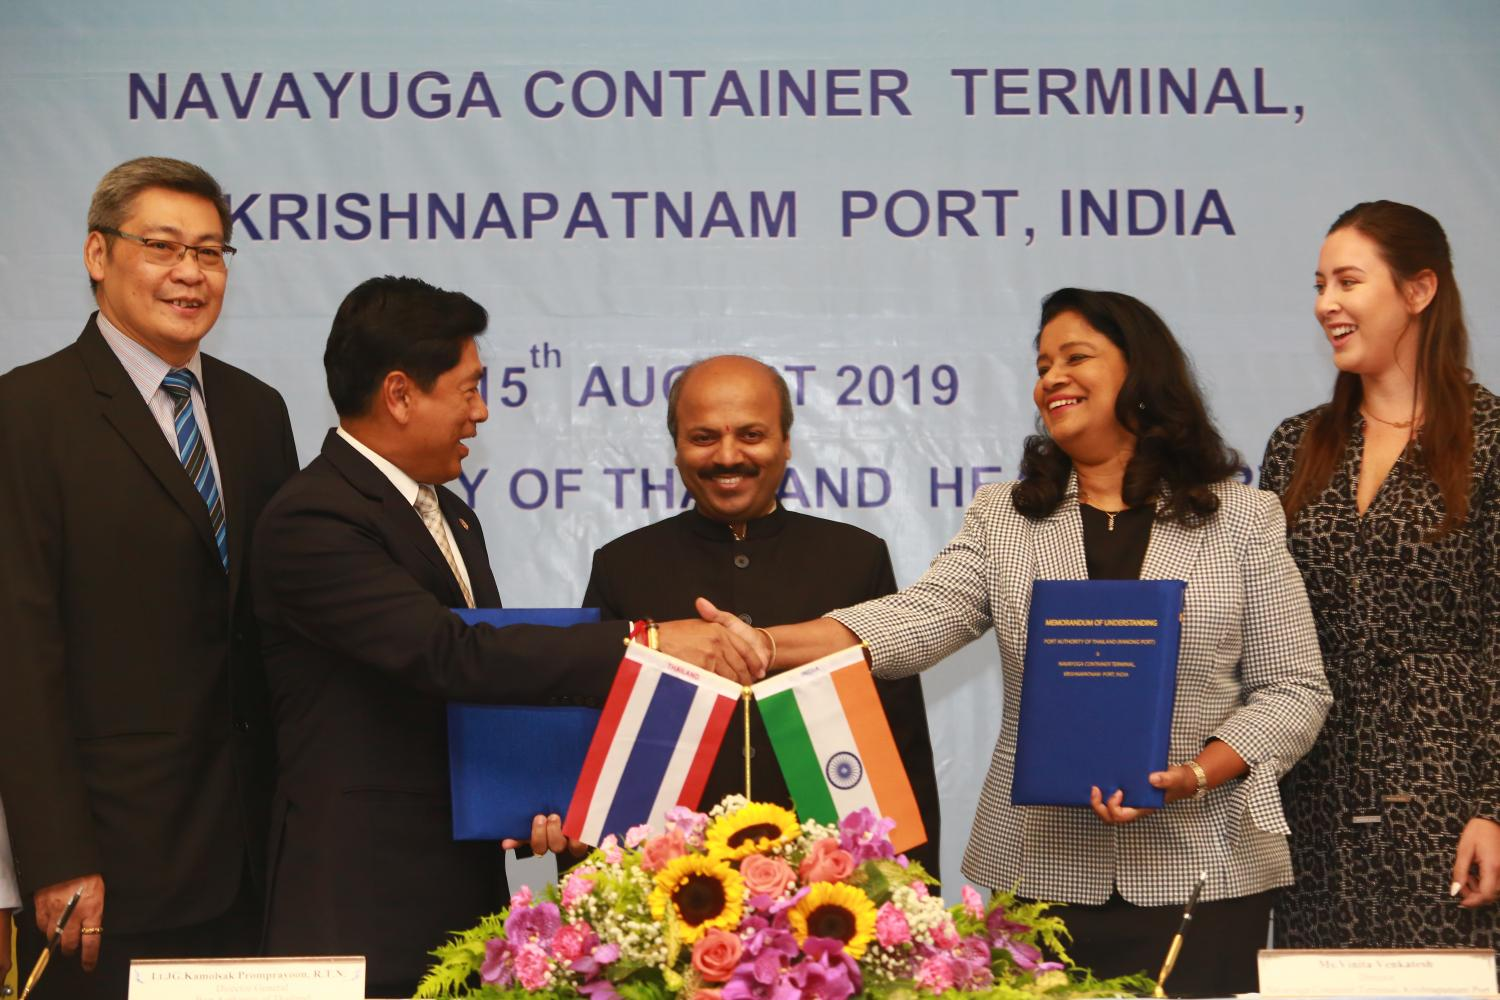 Port Authority of Thailand director-general Kamolsak Promprayoon shakes hands with Vinita Venkatesh, director of Krishnapatnam Port, at the signing of a memorandum of understanding to promote cooperation between Ranong Port and Krishnapatnam Port of India. Somchai Poomlard